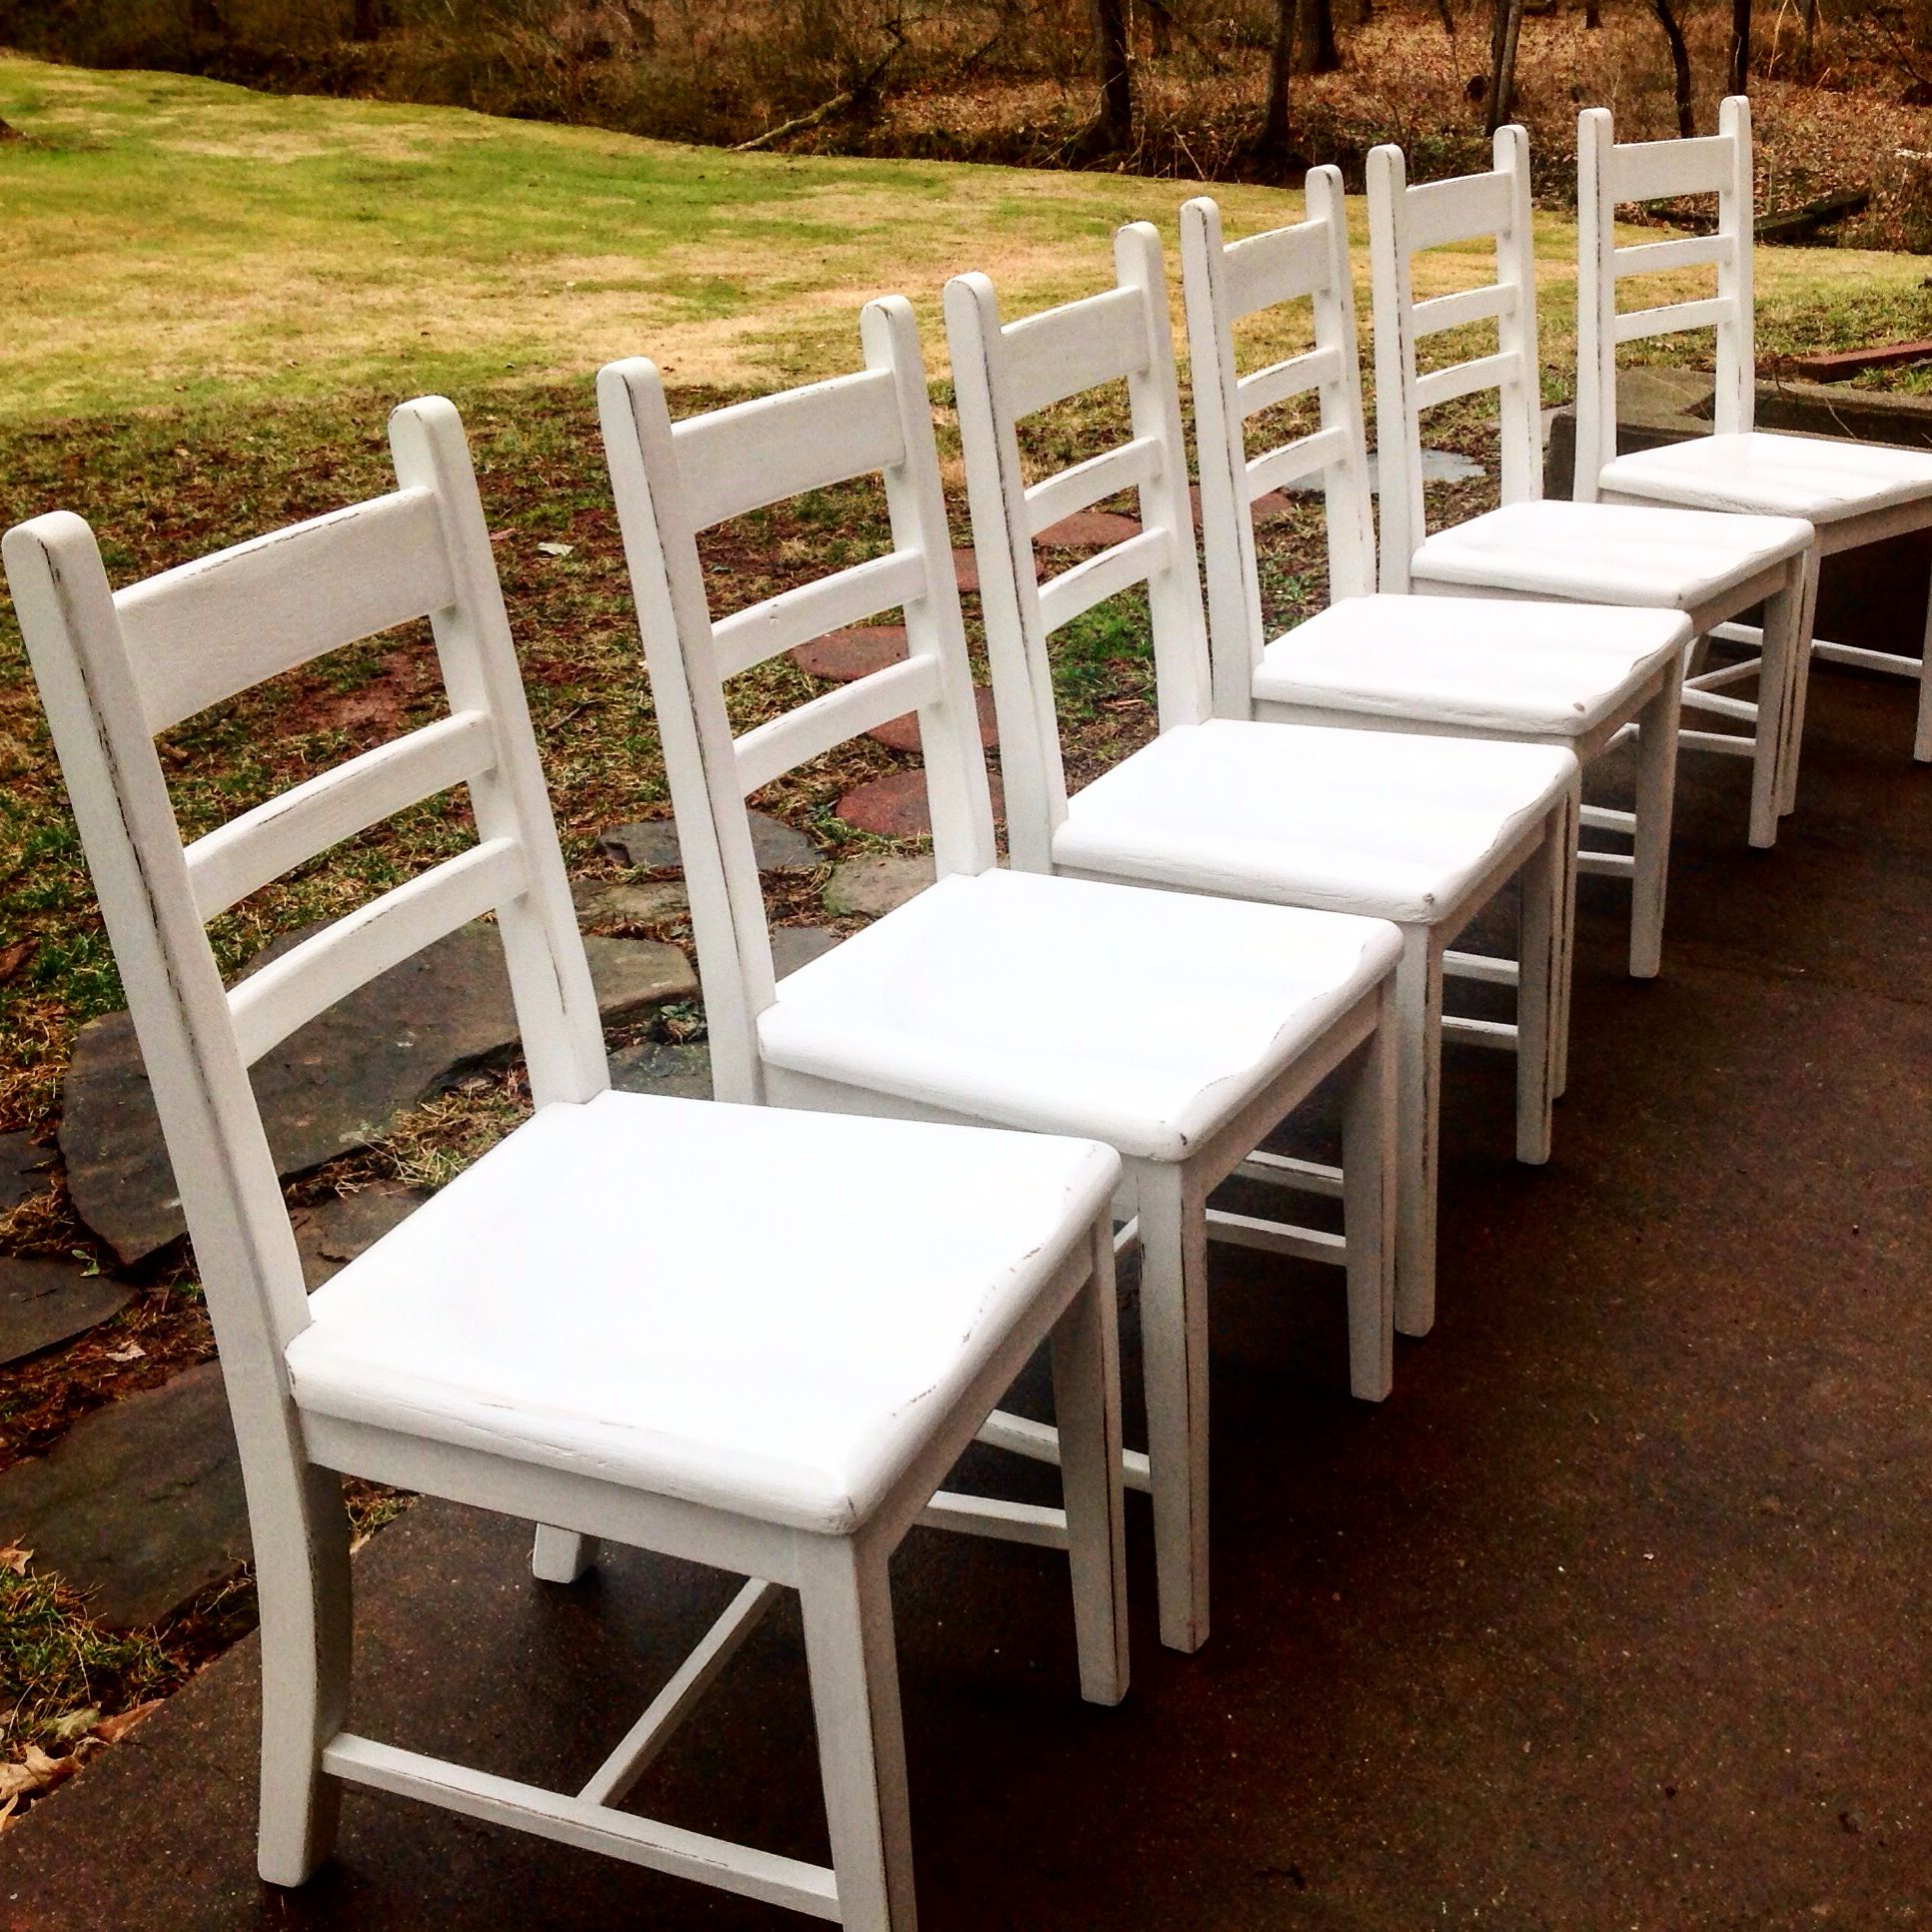 Farmhouse chairs finished in Rustoleum s Chalked paint in Linen